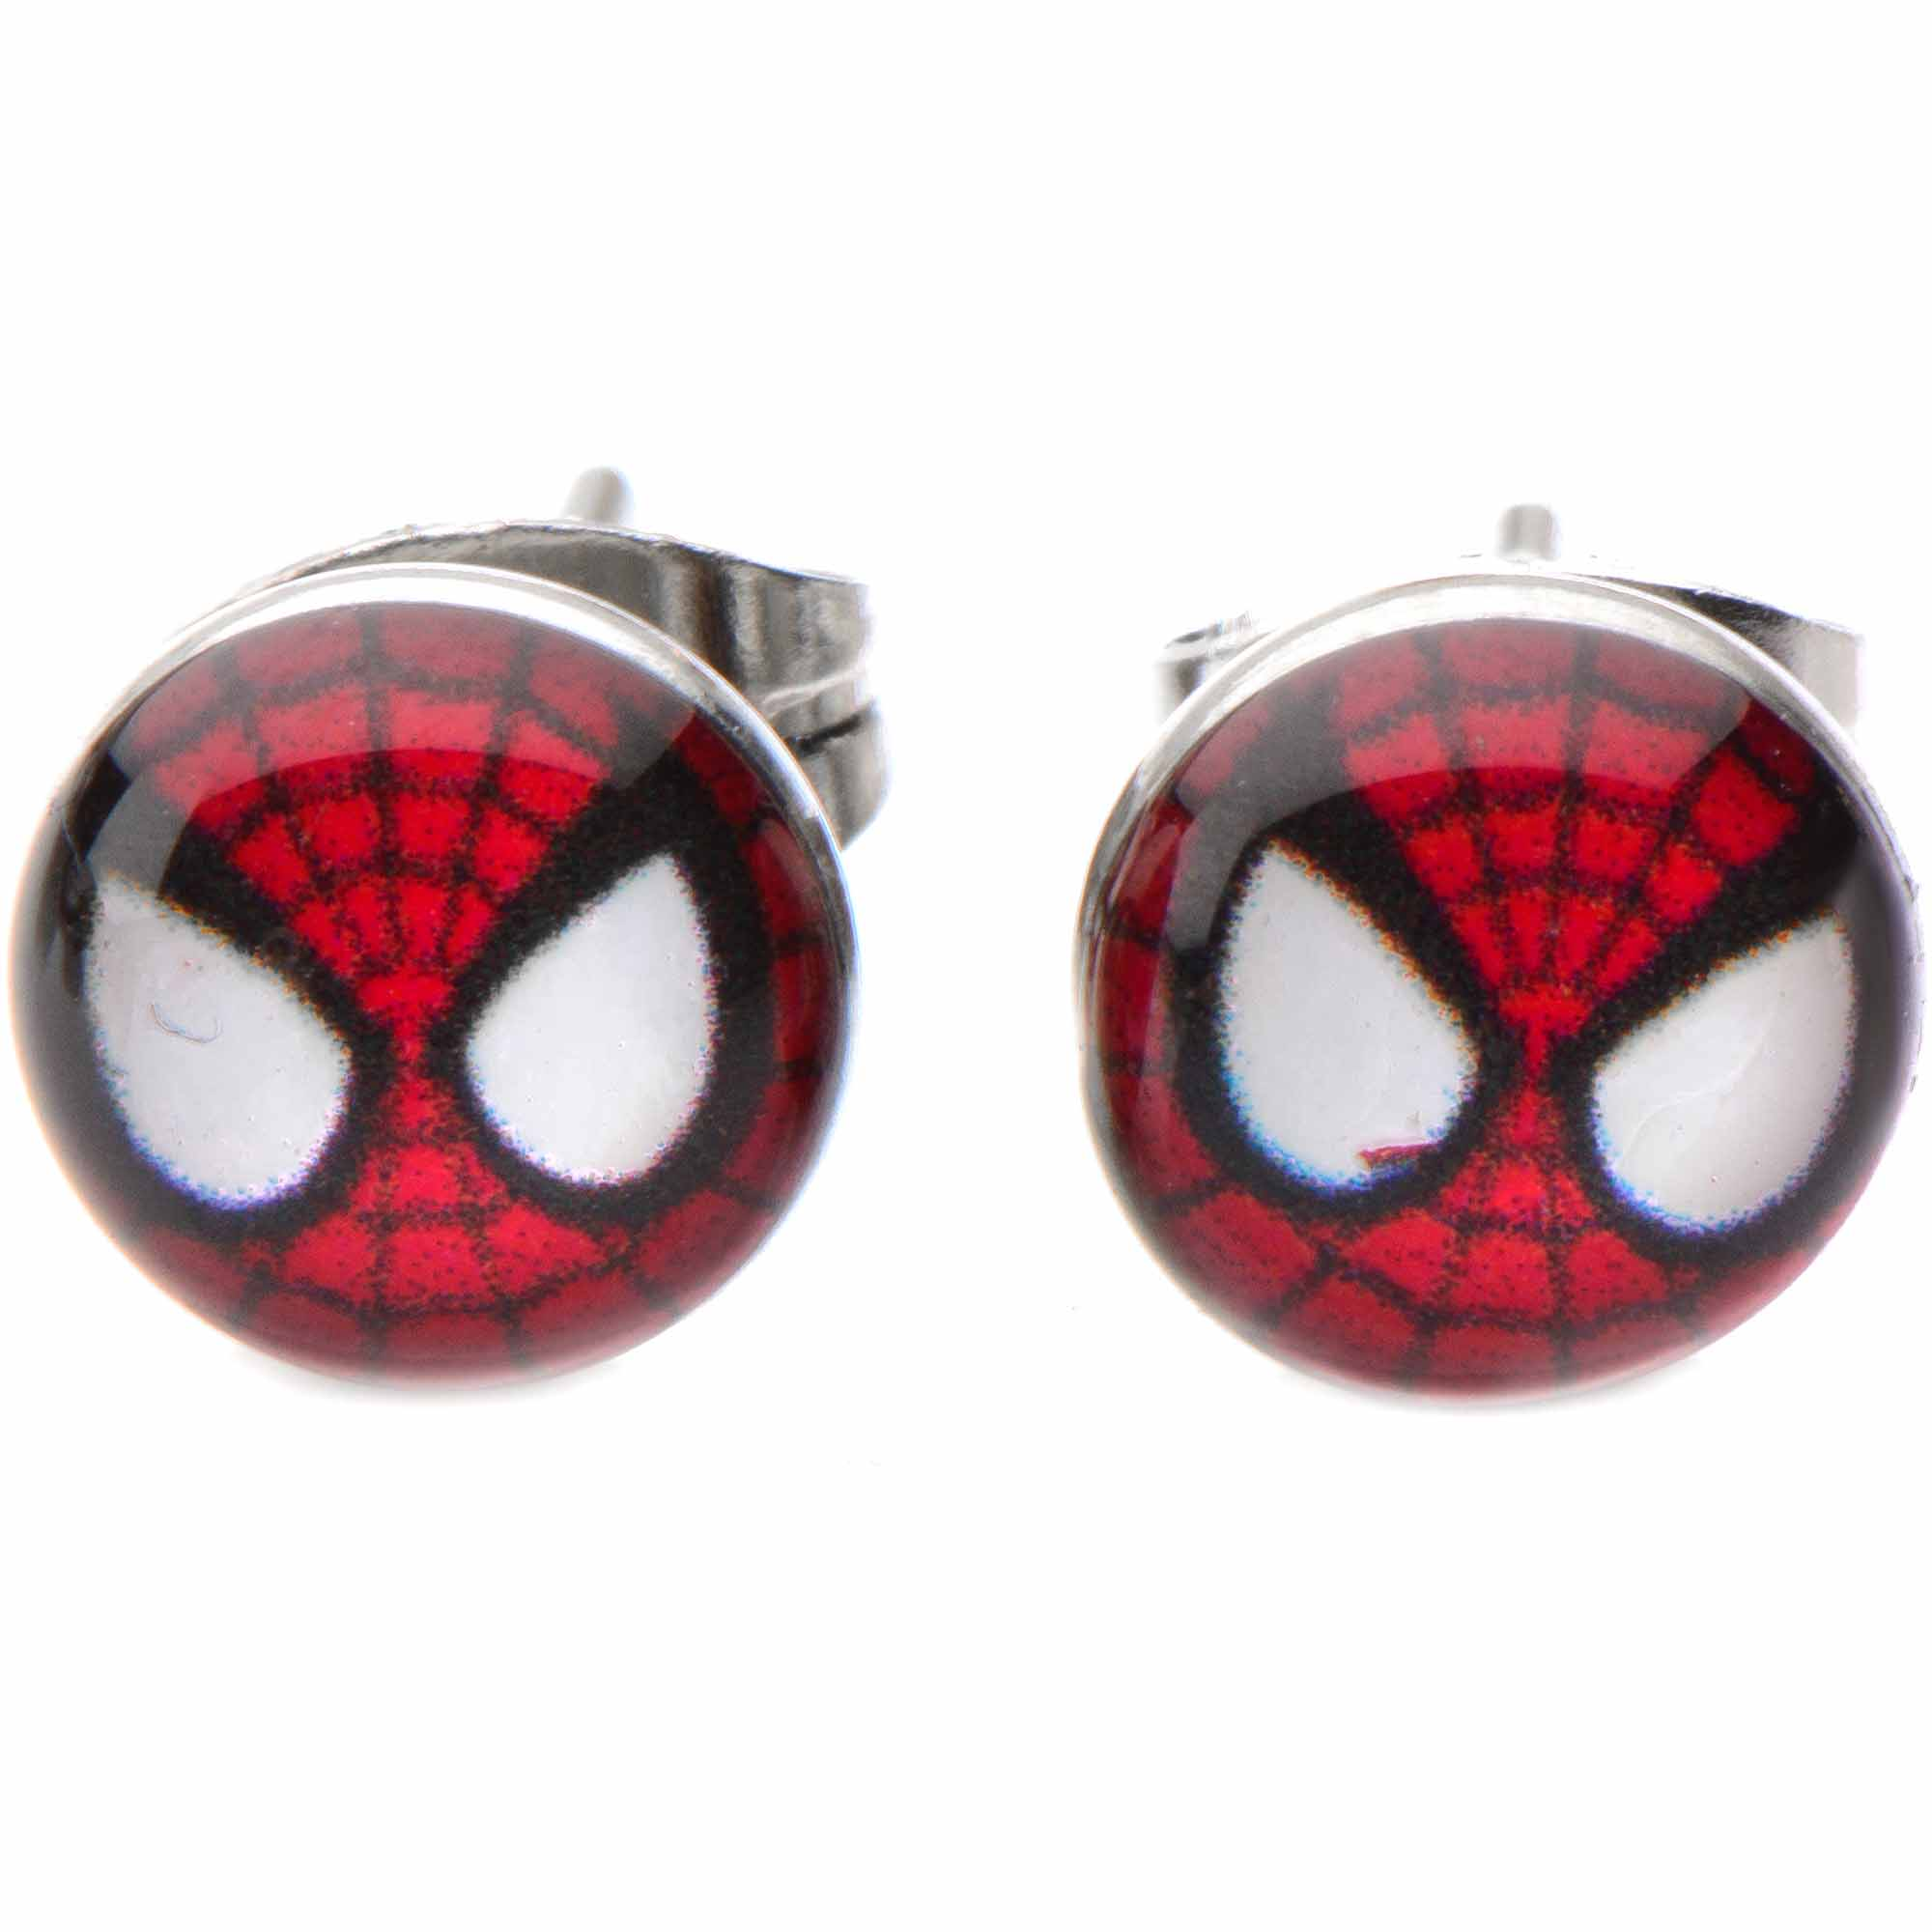 Officially Licensed Marvel Body Jewelry Surgical Steel Stud earrings with Spider-Man Design